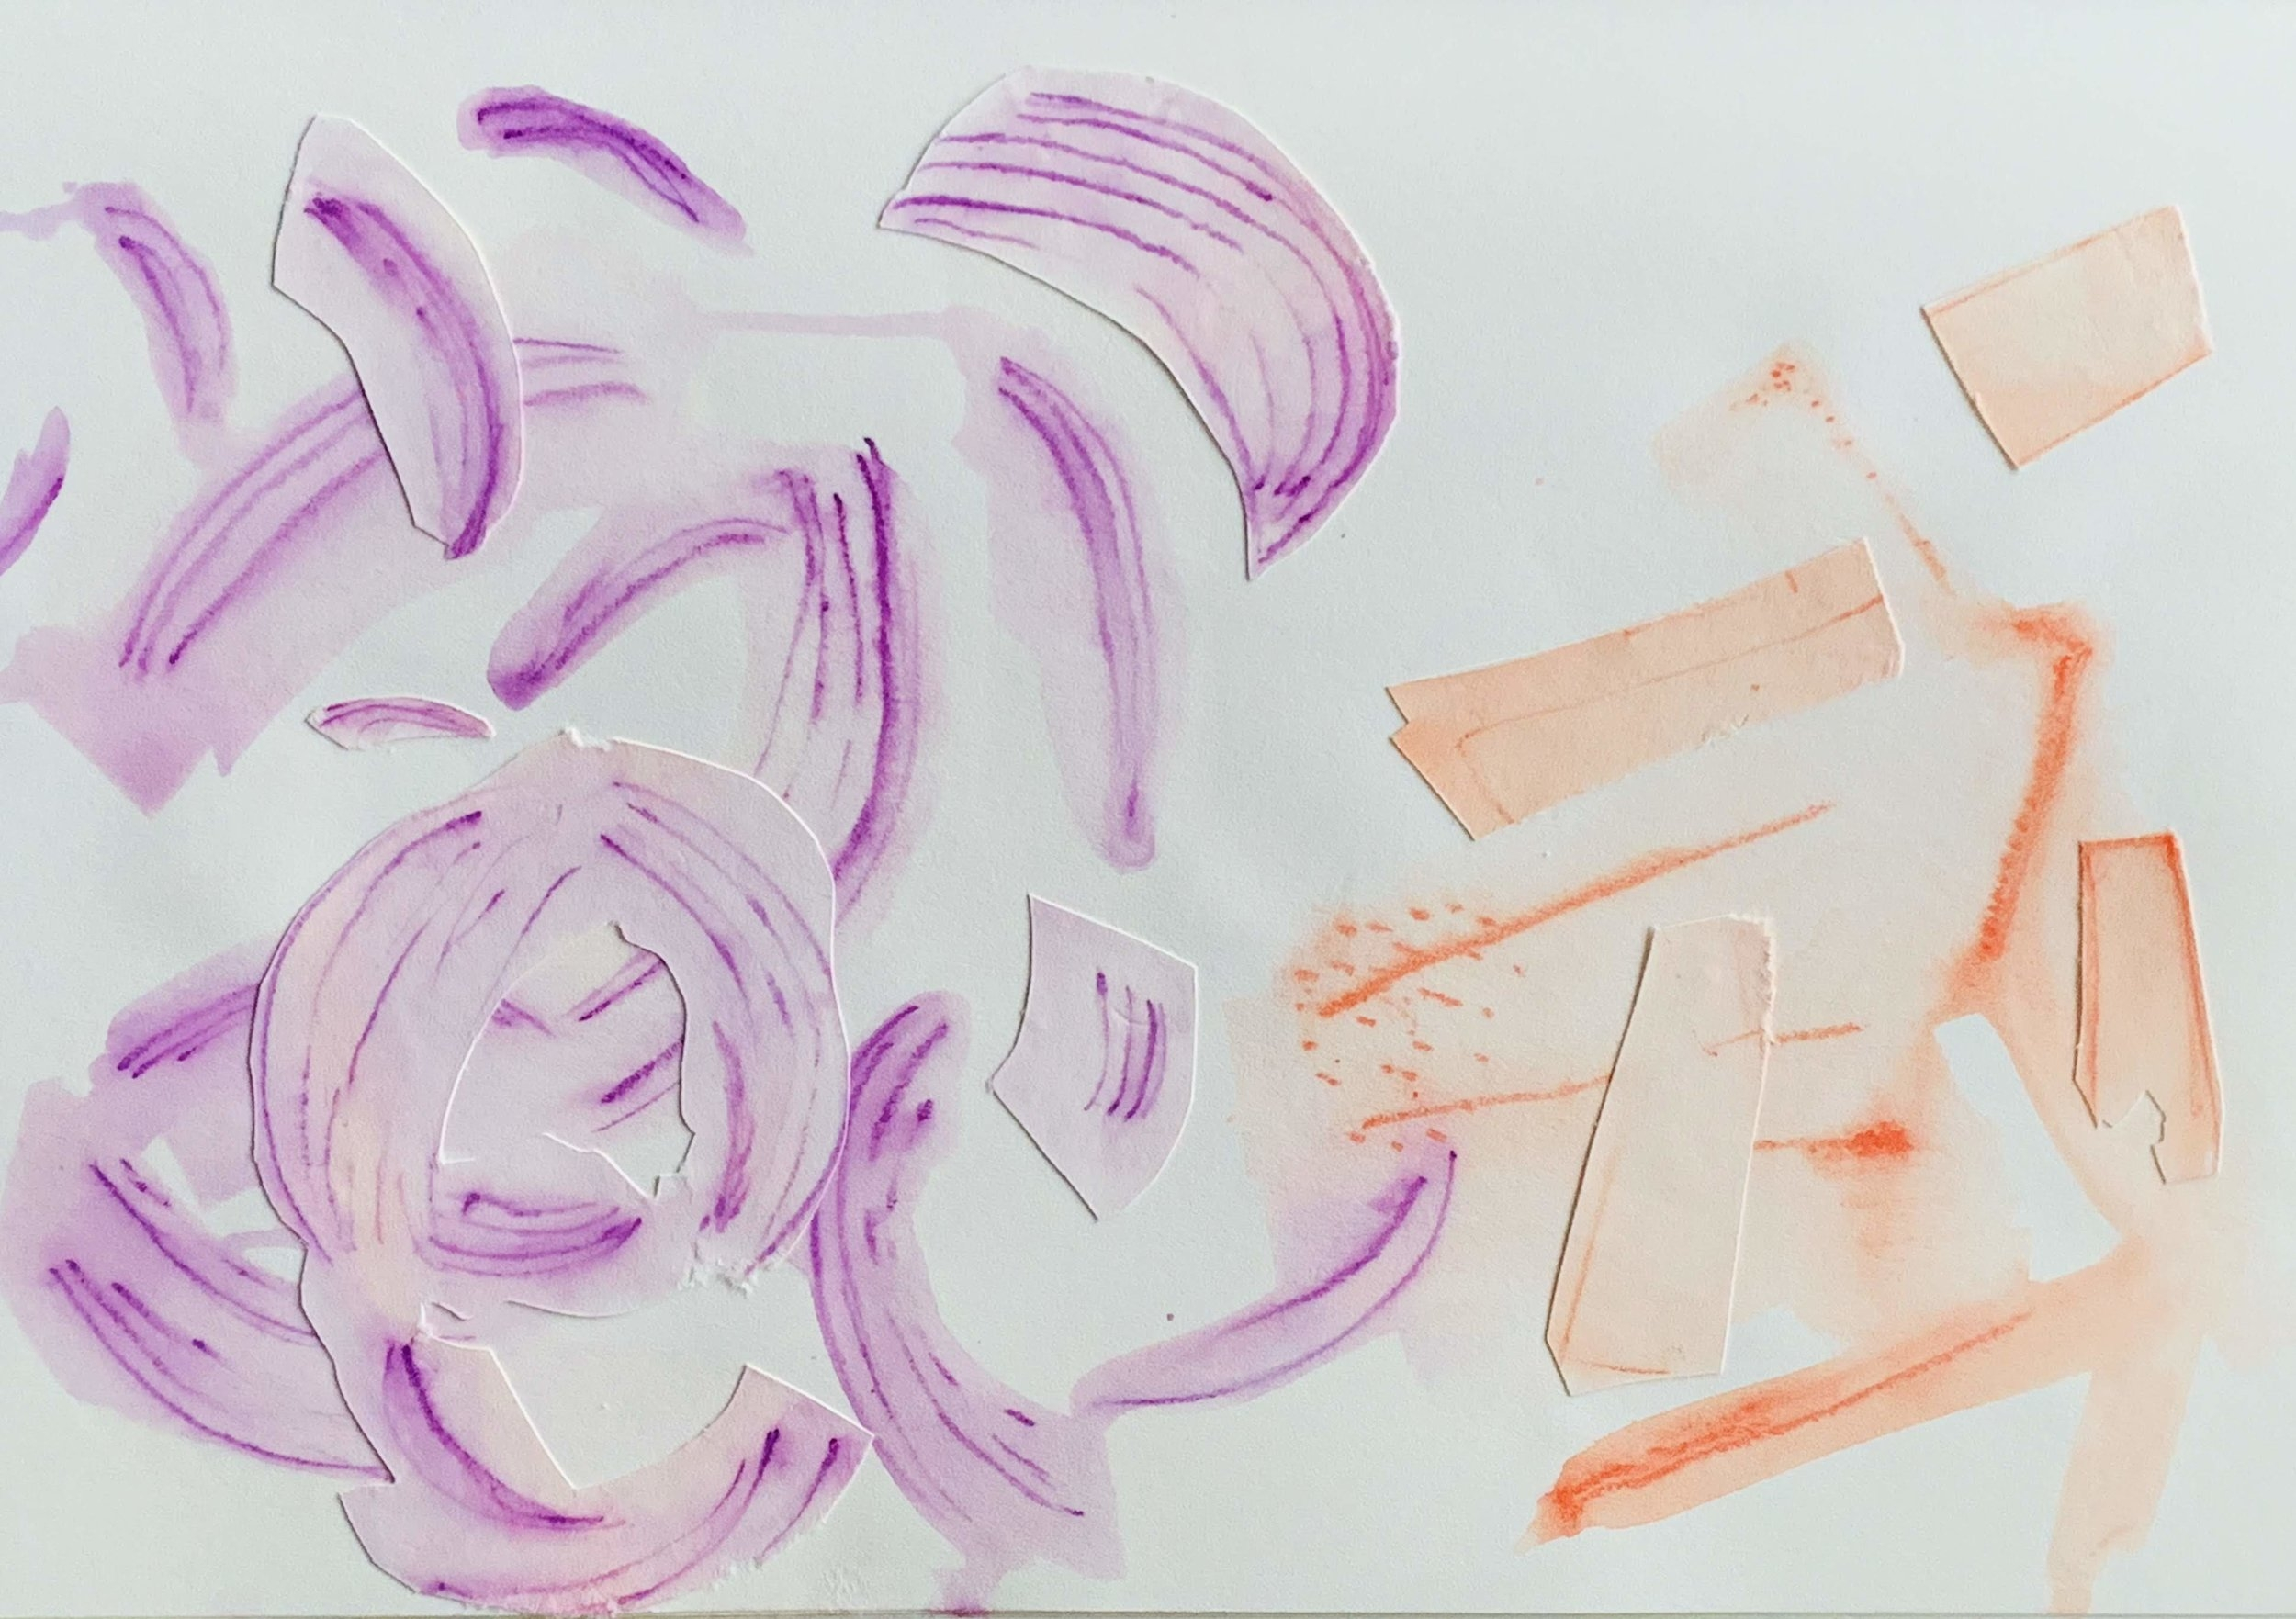 Untitled Abstraction in Purple and Orange